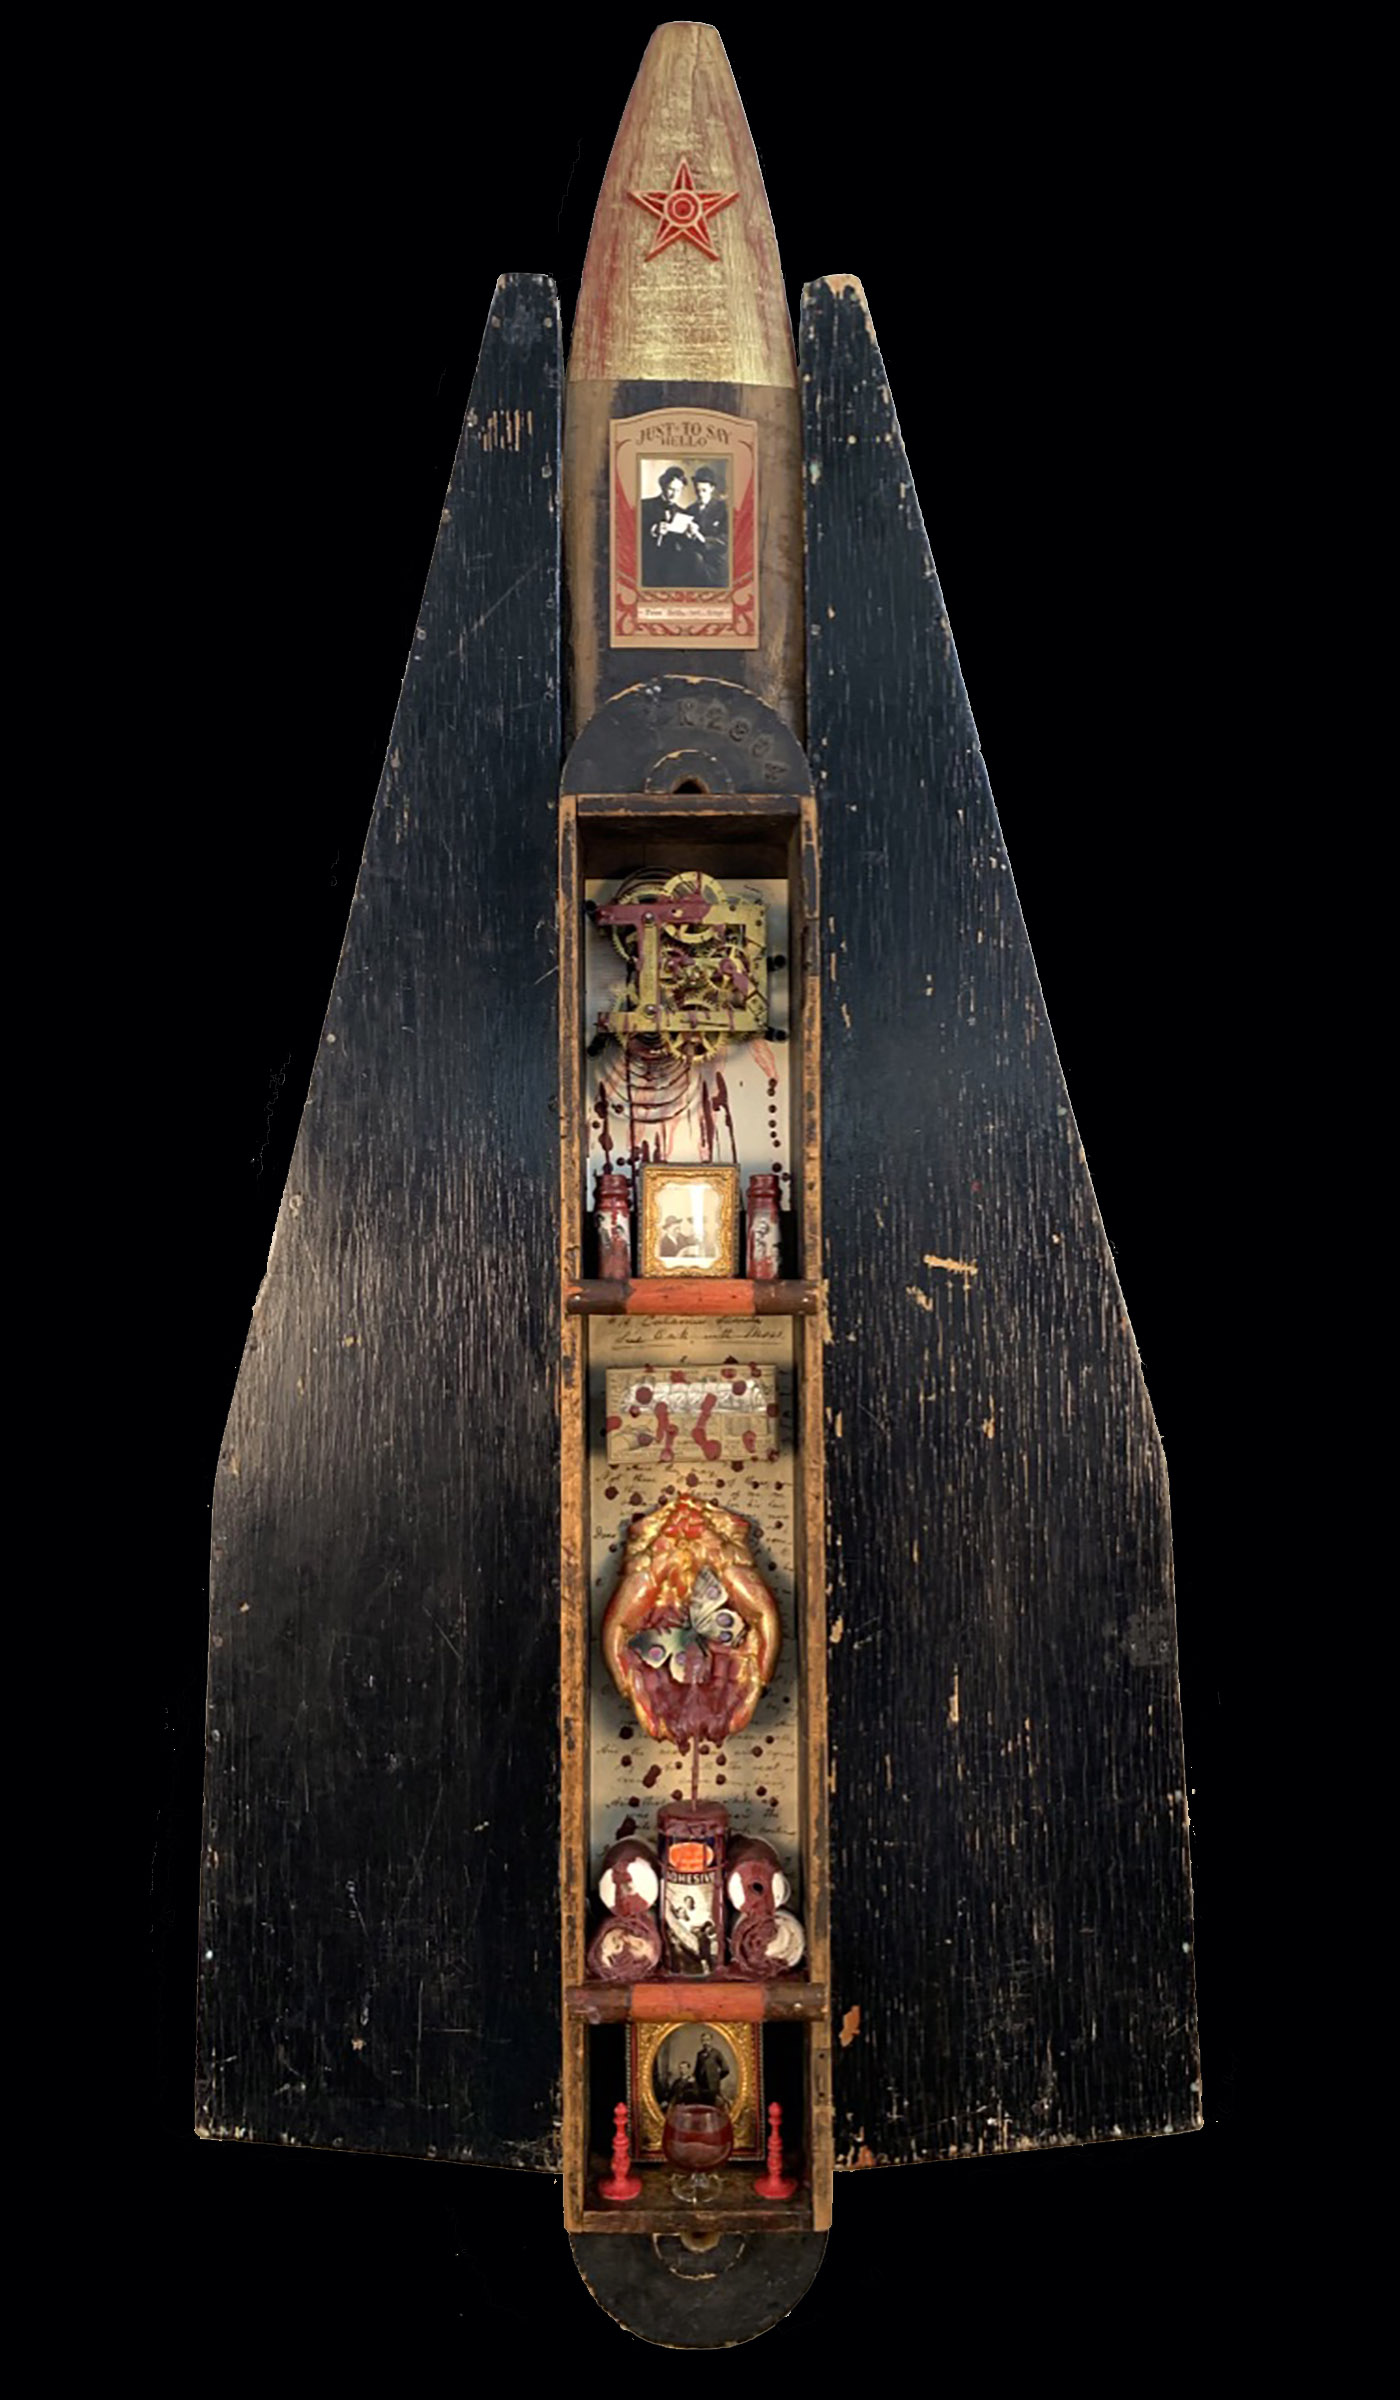 """""""Press Forth, Red Drops"""" 2019 $950.00 55""""h x 24""""w x 3.5"""" d mixed media assemblage: wood box, wood pelt stretcher, wood rifle case, foundry patterns, clock gears, vintage photos & tintypes, tintype frames, iron star, cast aluminum hands, Dr Scholls adhesive bandages box, vintage First Aid bandages, plastic butterfly, anatomical illustration, glass vials, cordial glass, ivory chess pieces, wax, gold leaf"""